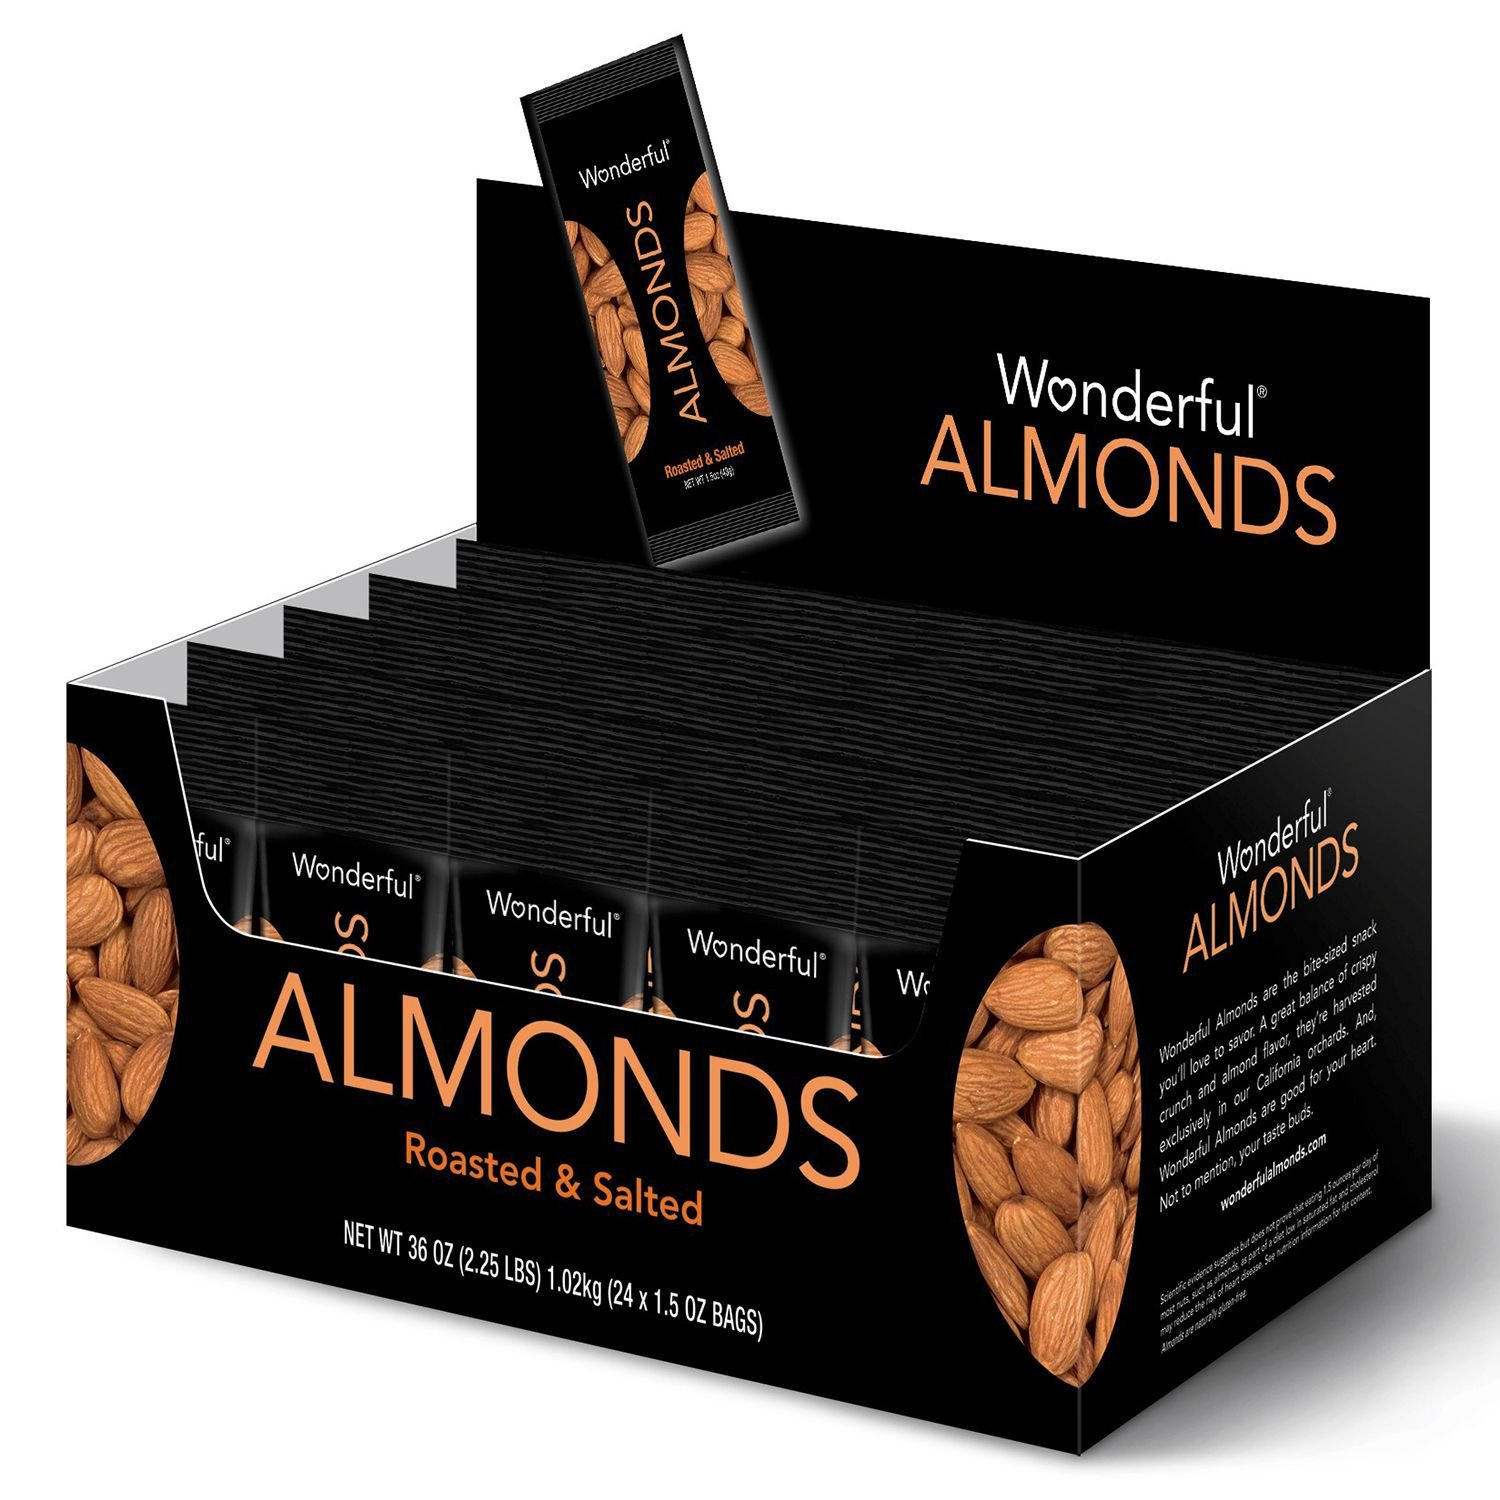 Wonderful Almonds Roasted & Salted (36 oz) (pack of 6)